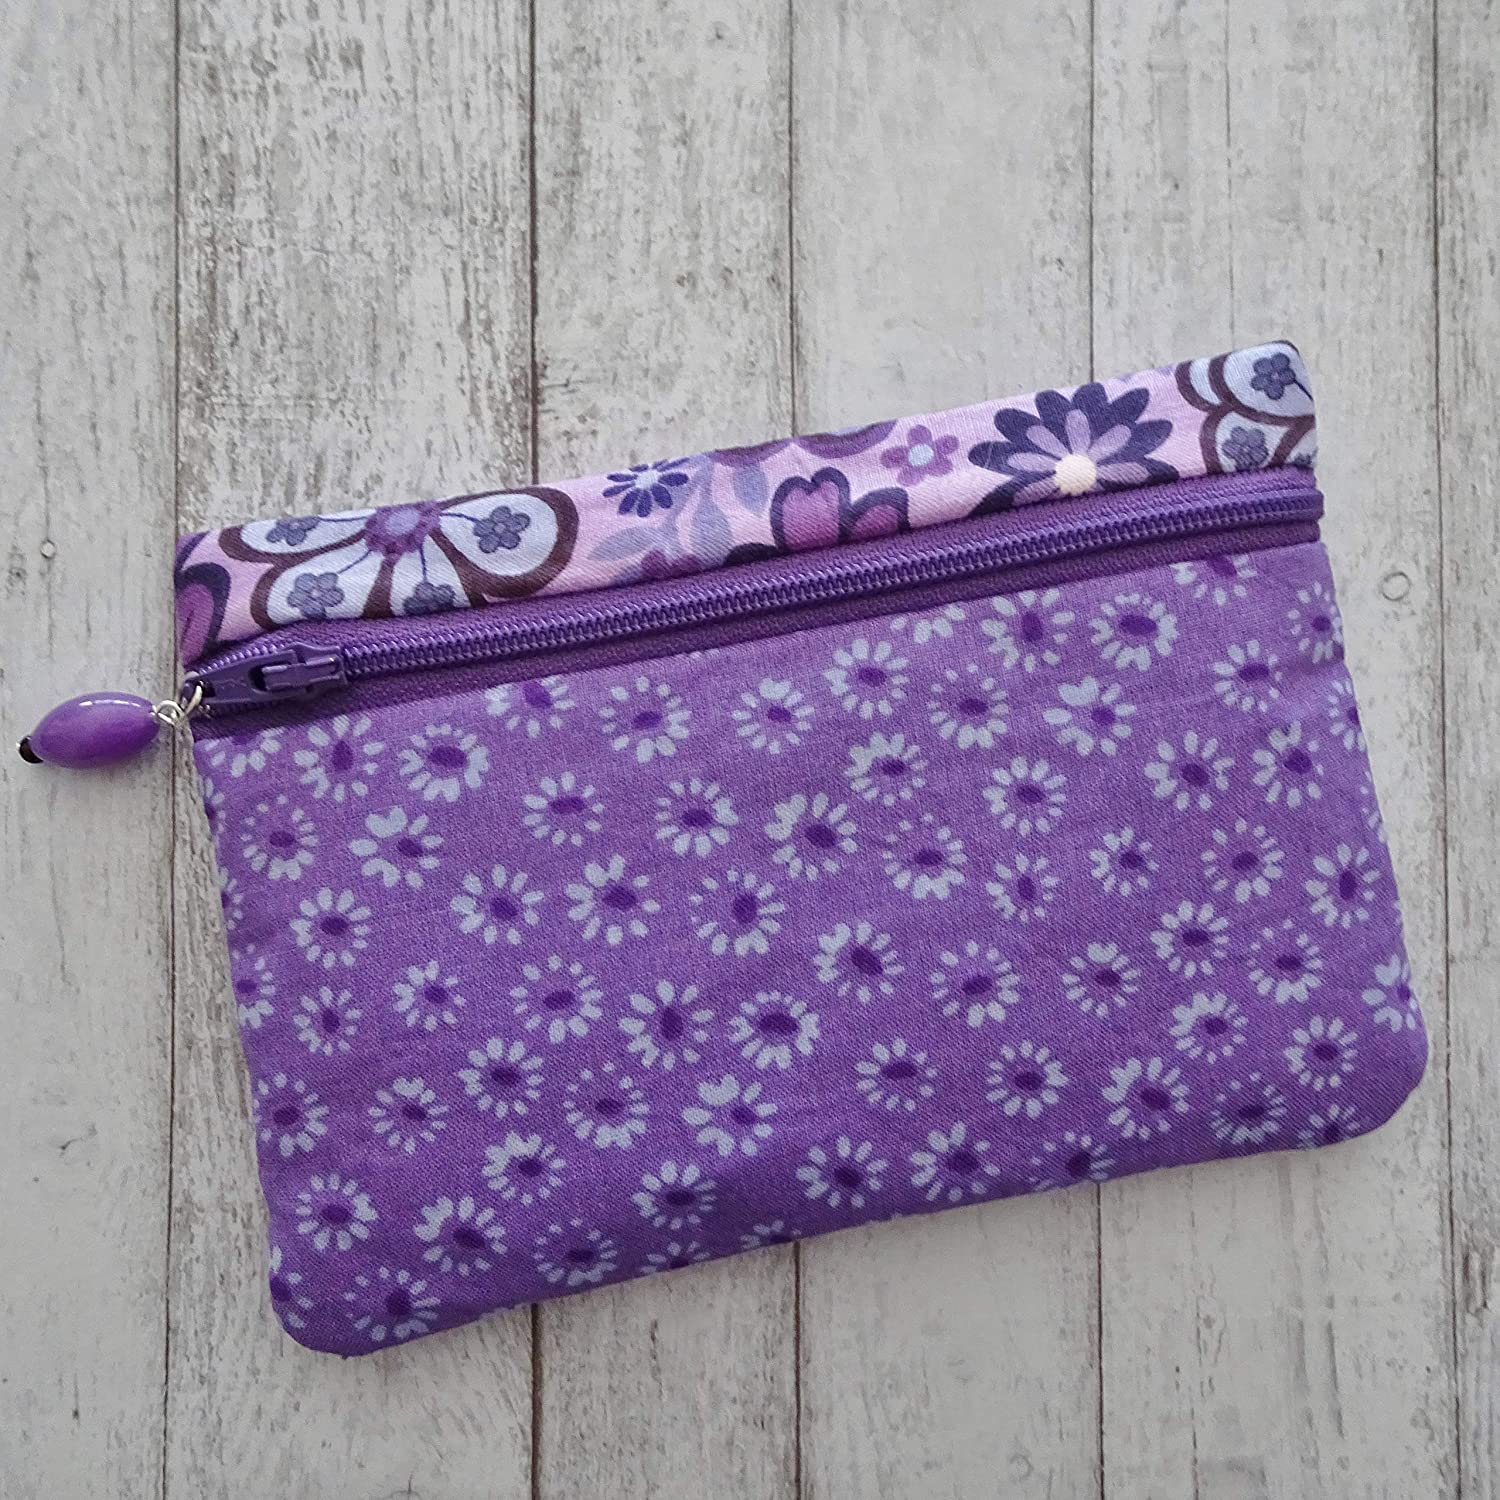 Handmade small zipper purse zippered pouch cotton for knitting crochet notions  accessories pencil case 8.5 x 5.5  *Night of Owls*